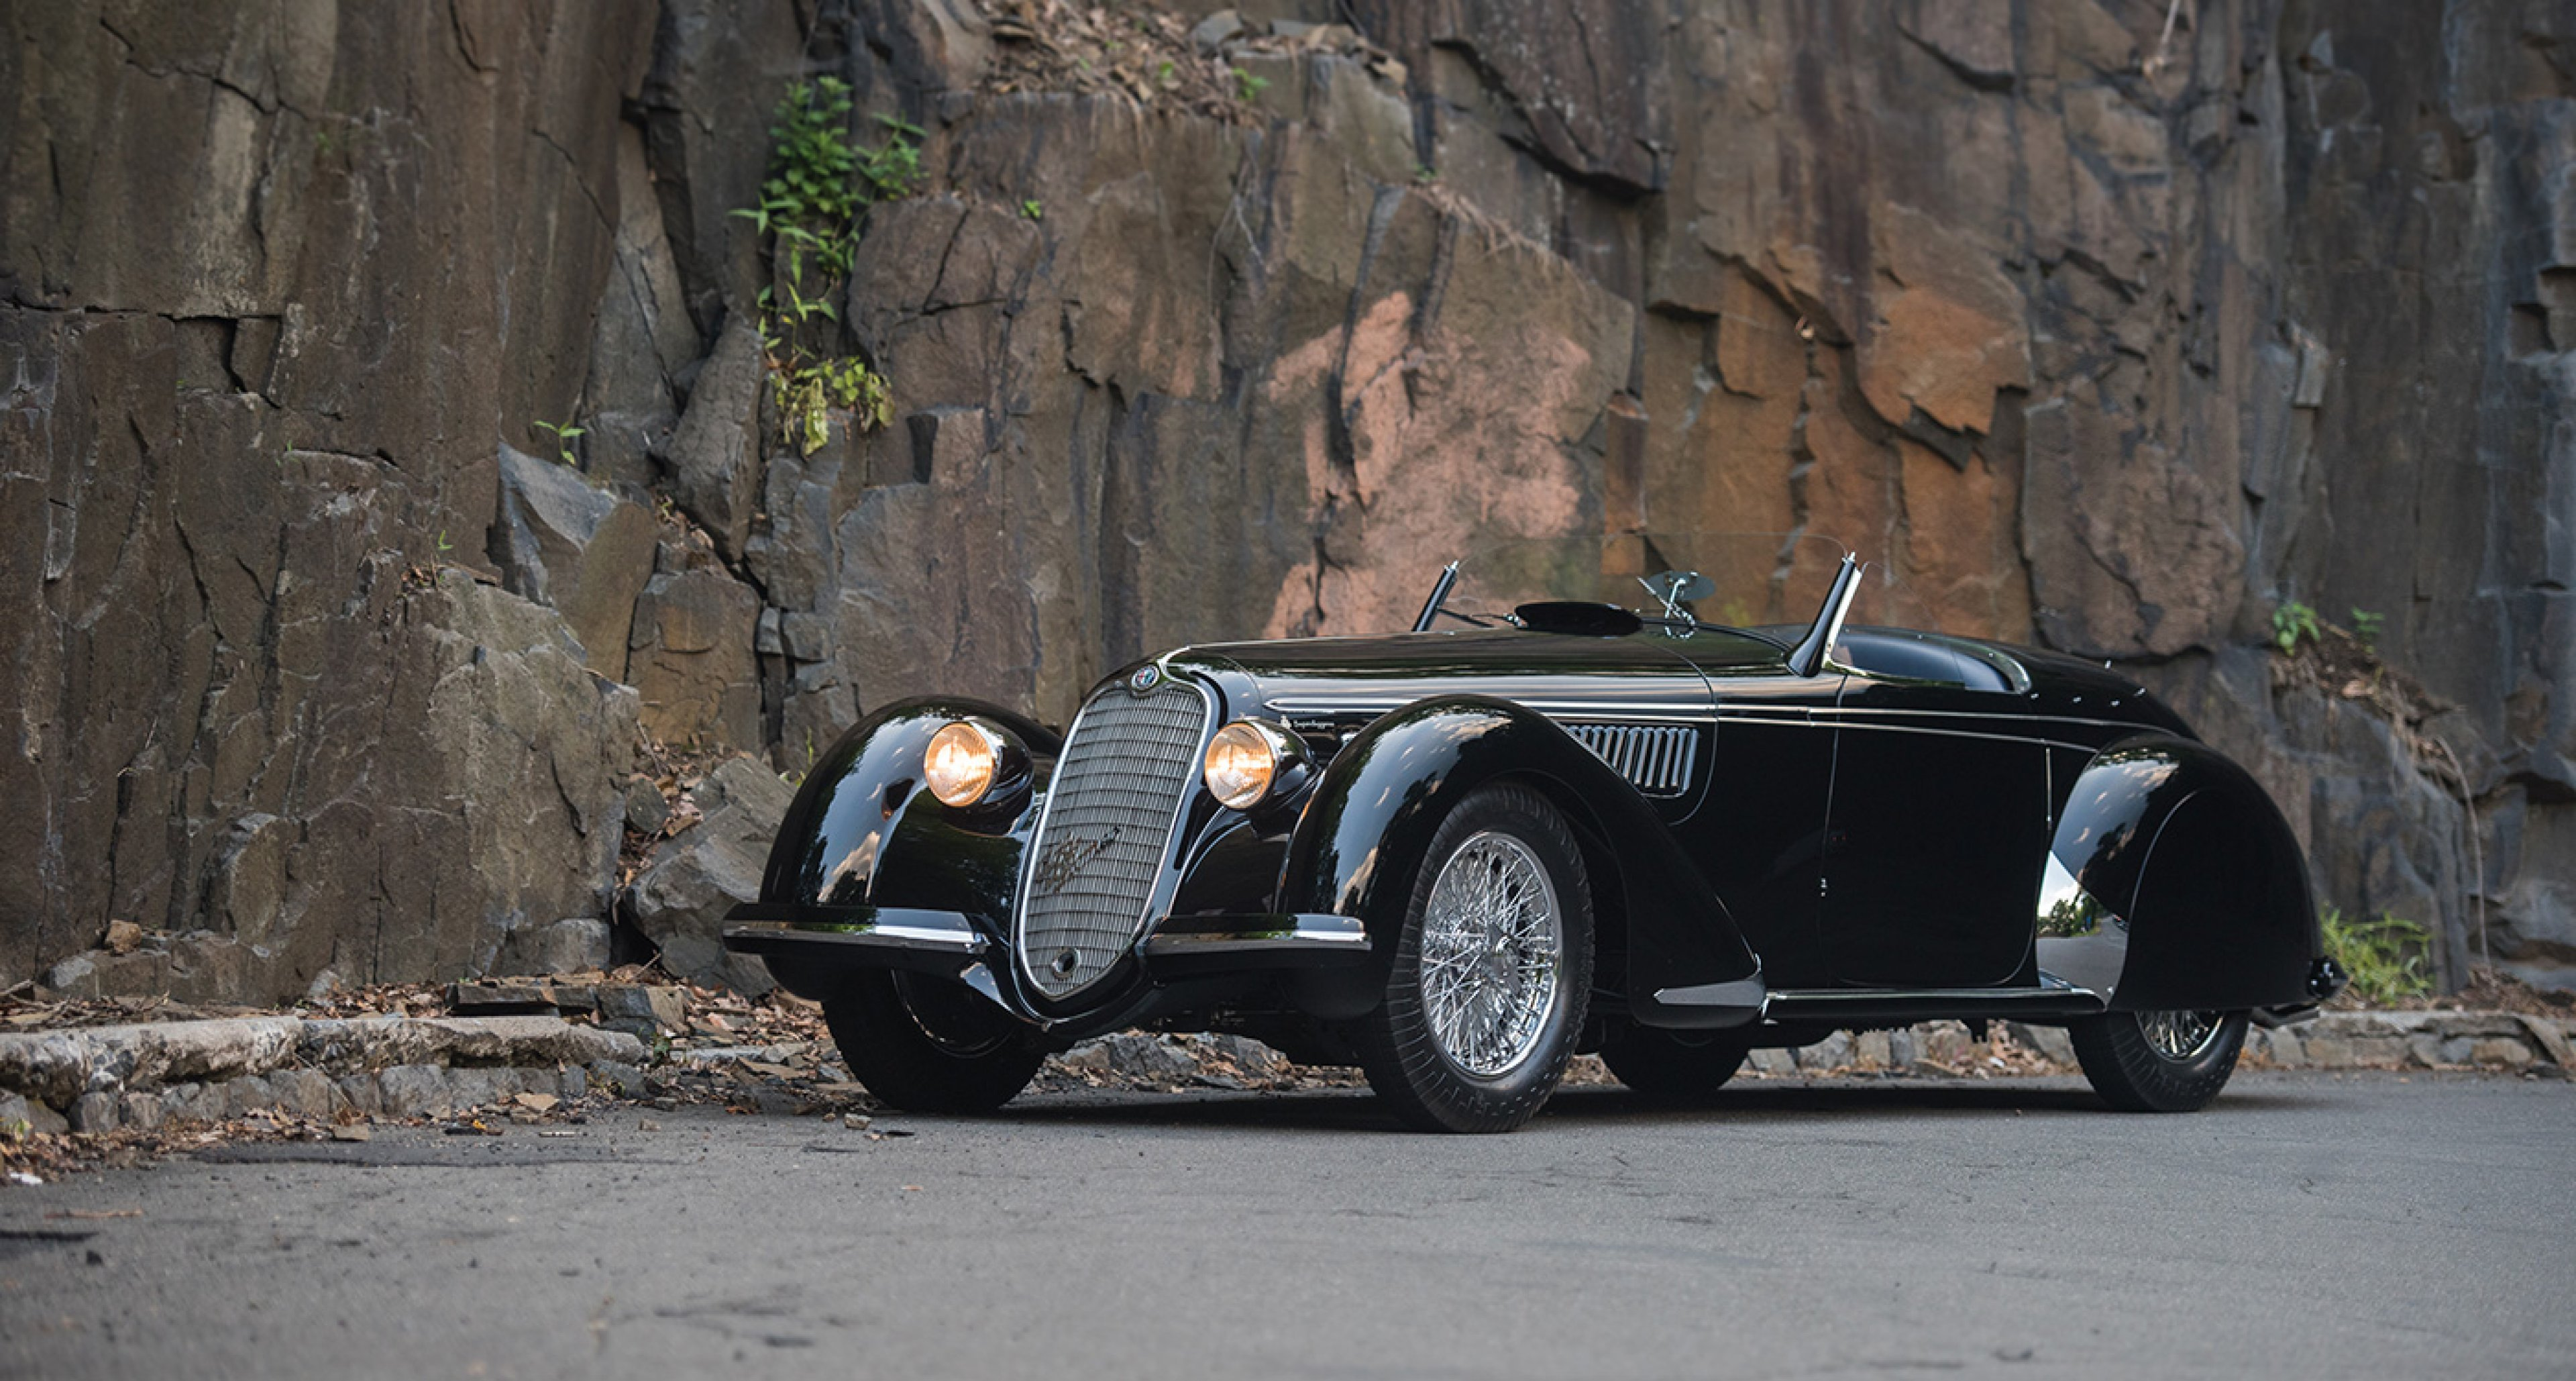 Conquer the concours lawns with the most desirable pre-War